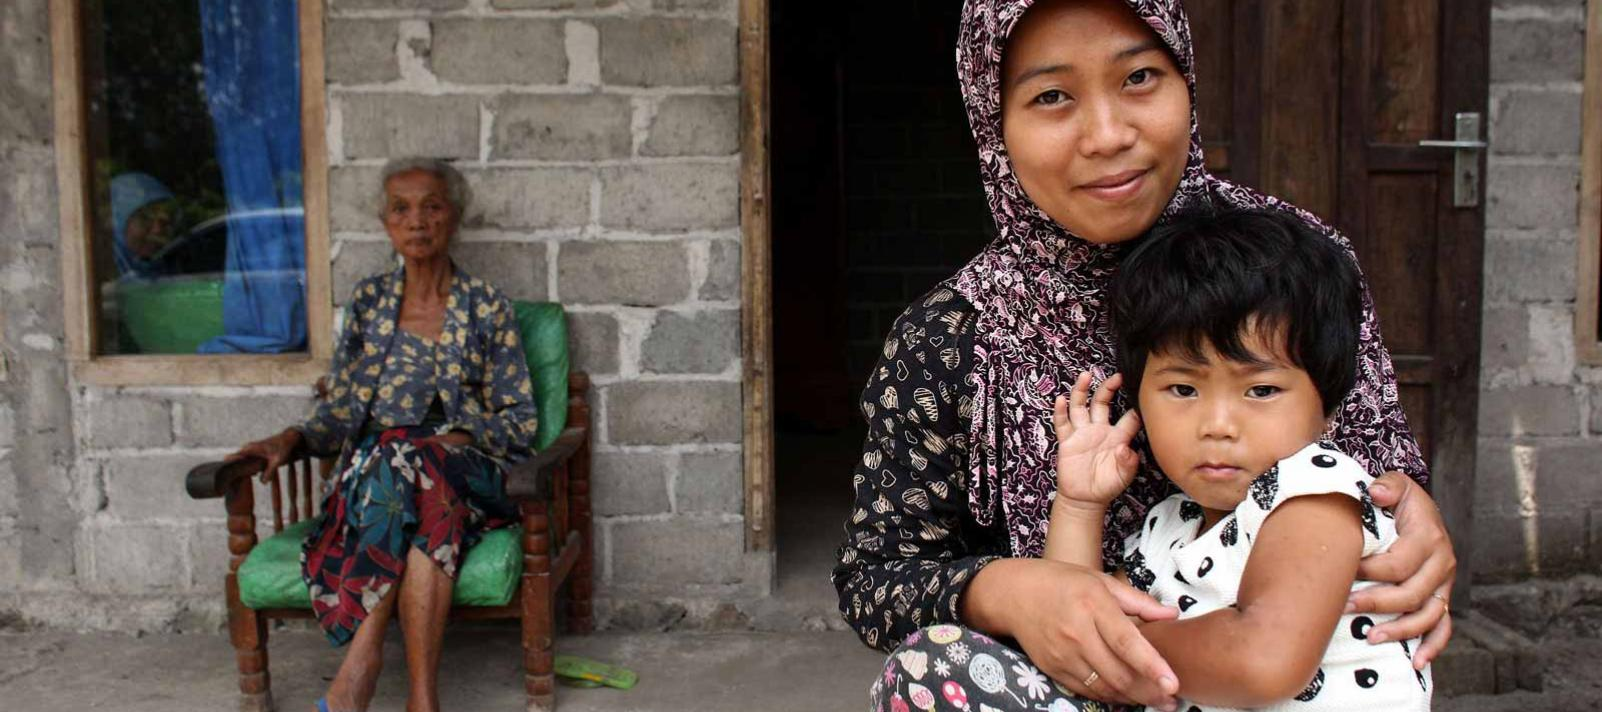 Rita Iriati, her 3-year-old daughter, Novita, on her lap, sits smiling near the entrance to their home, in the village of Kemalang in Klaten District, Central Java Province, Indonesia